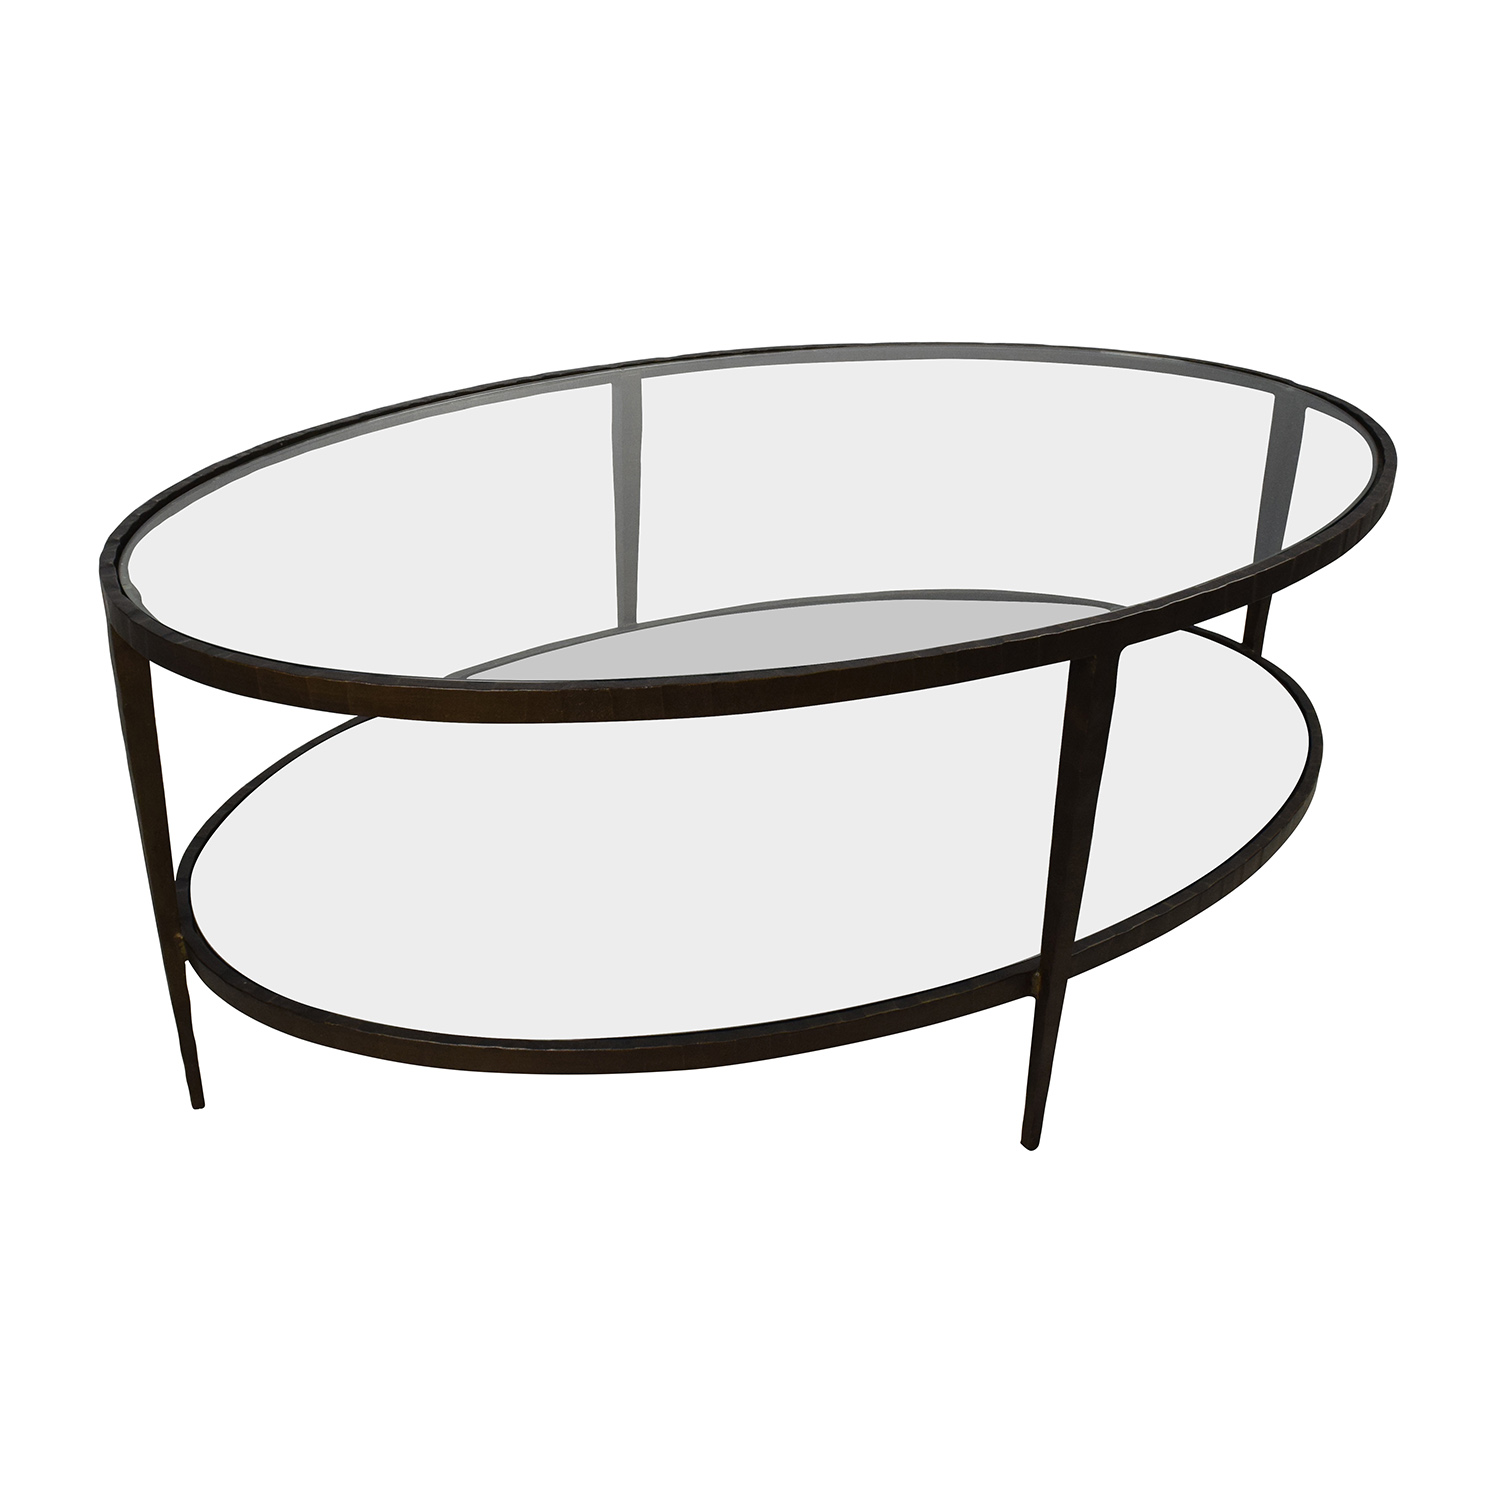 50 Off Crate Barrel Crate Barrel Clairmont Glass Coffee Table Tables